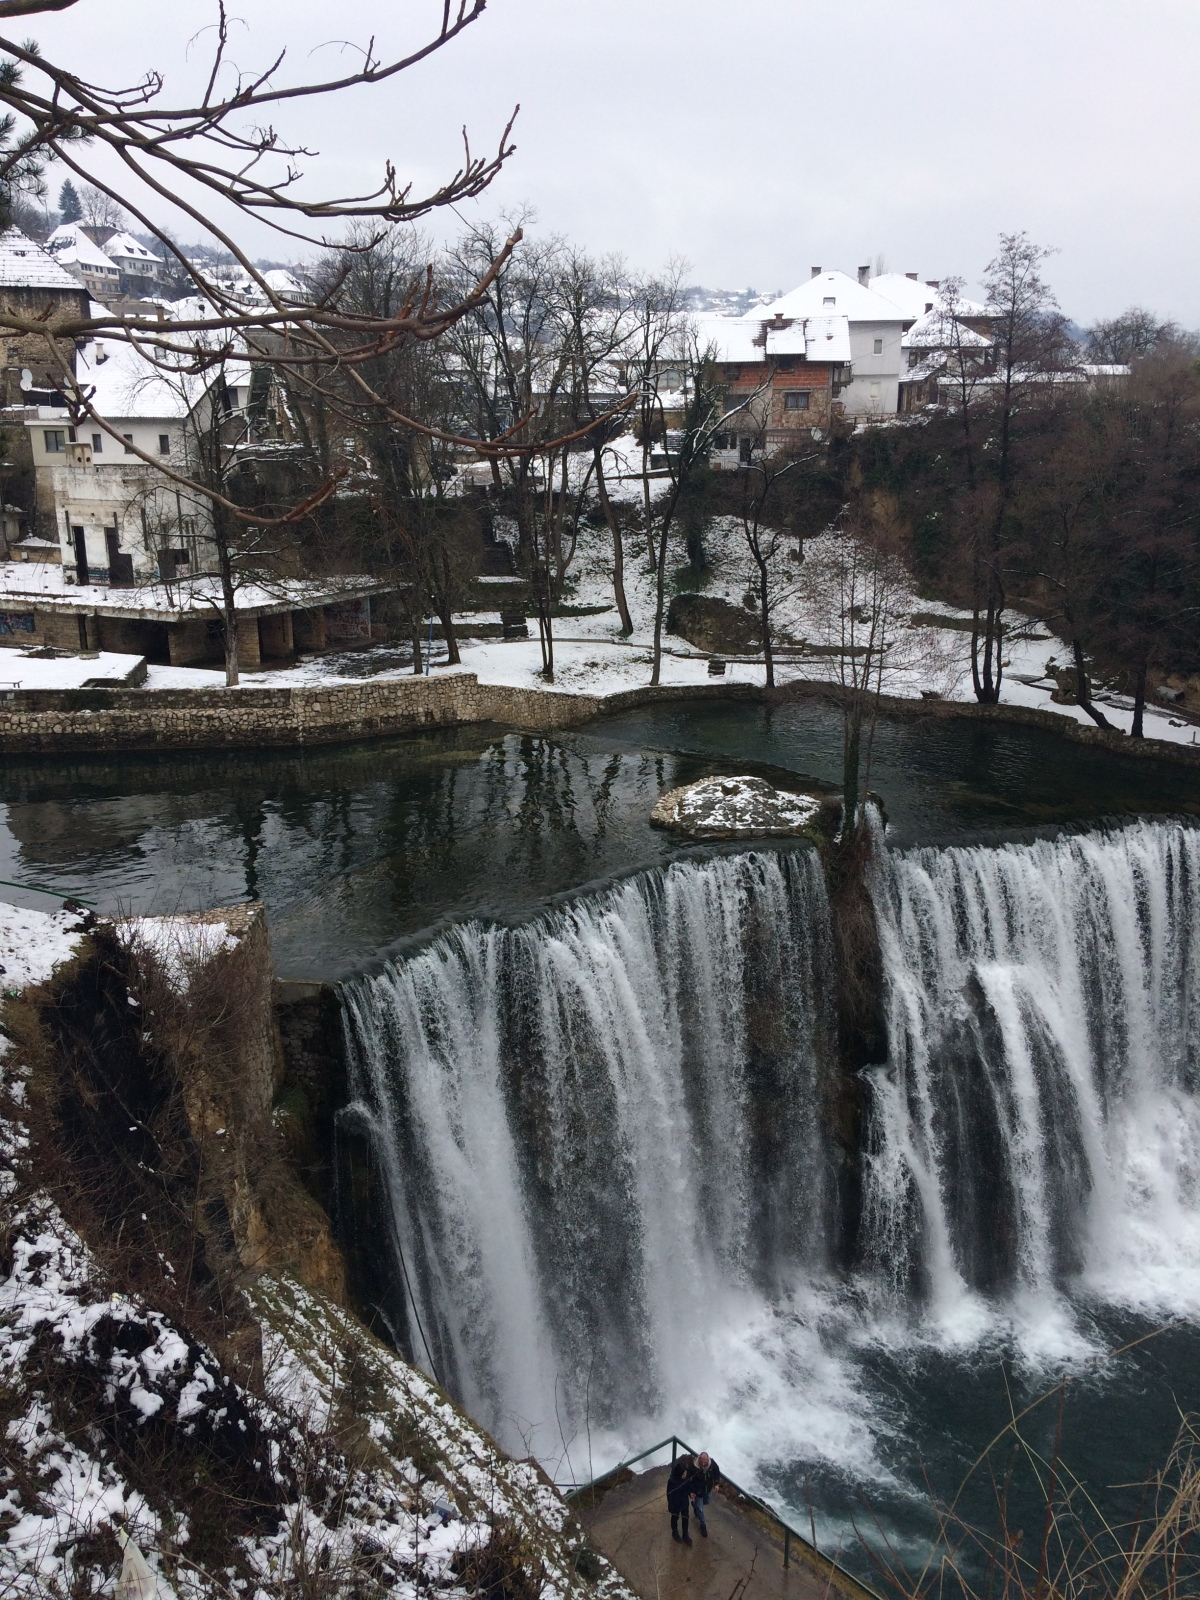 A Birthday Road-Trip to Jajce